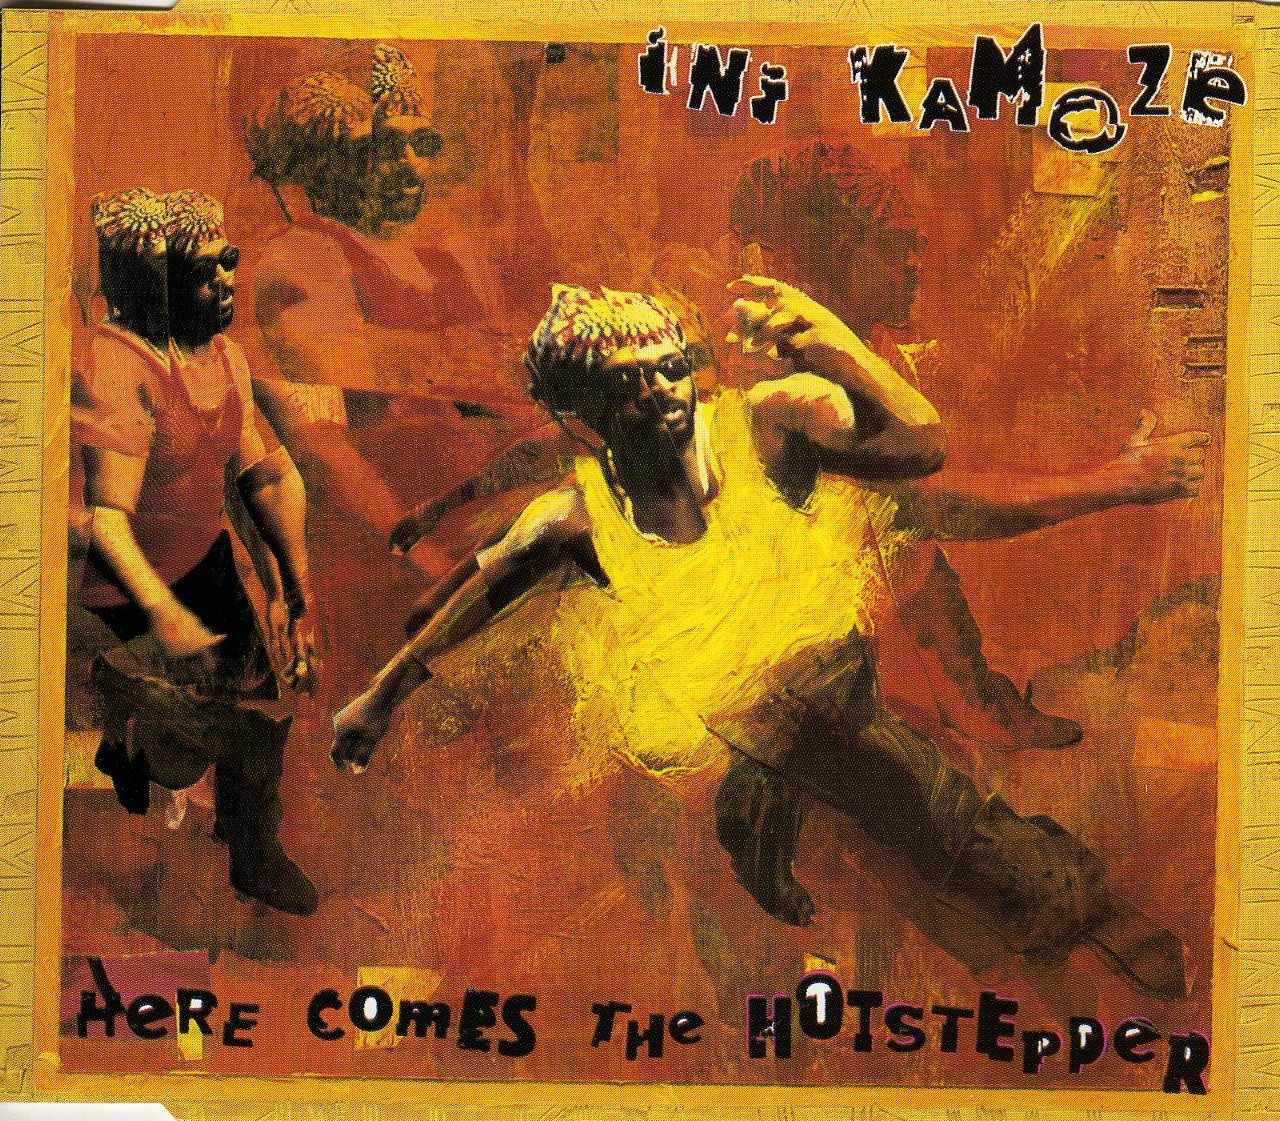 here-comes-the-hotstepper-ini-kamoze